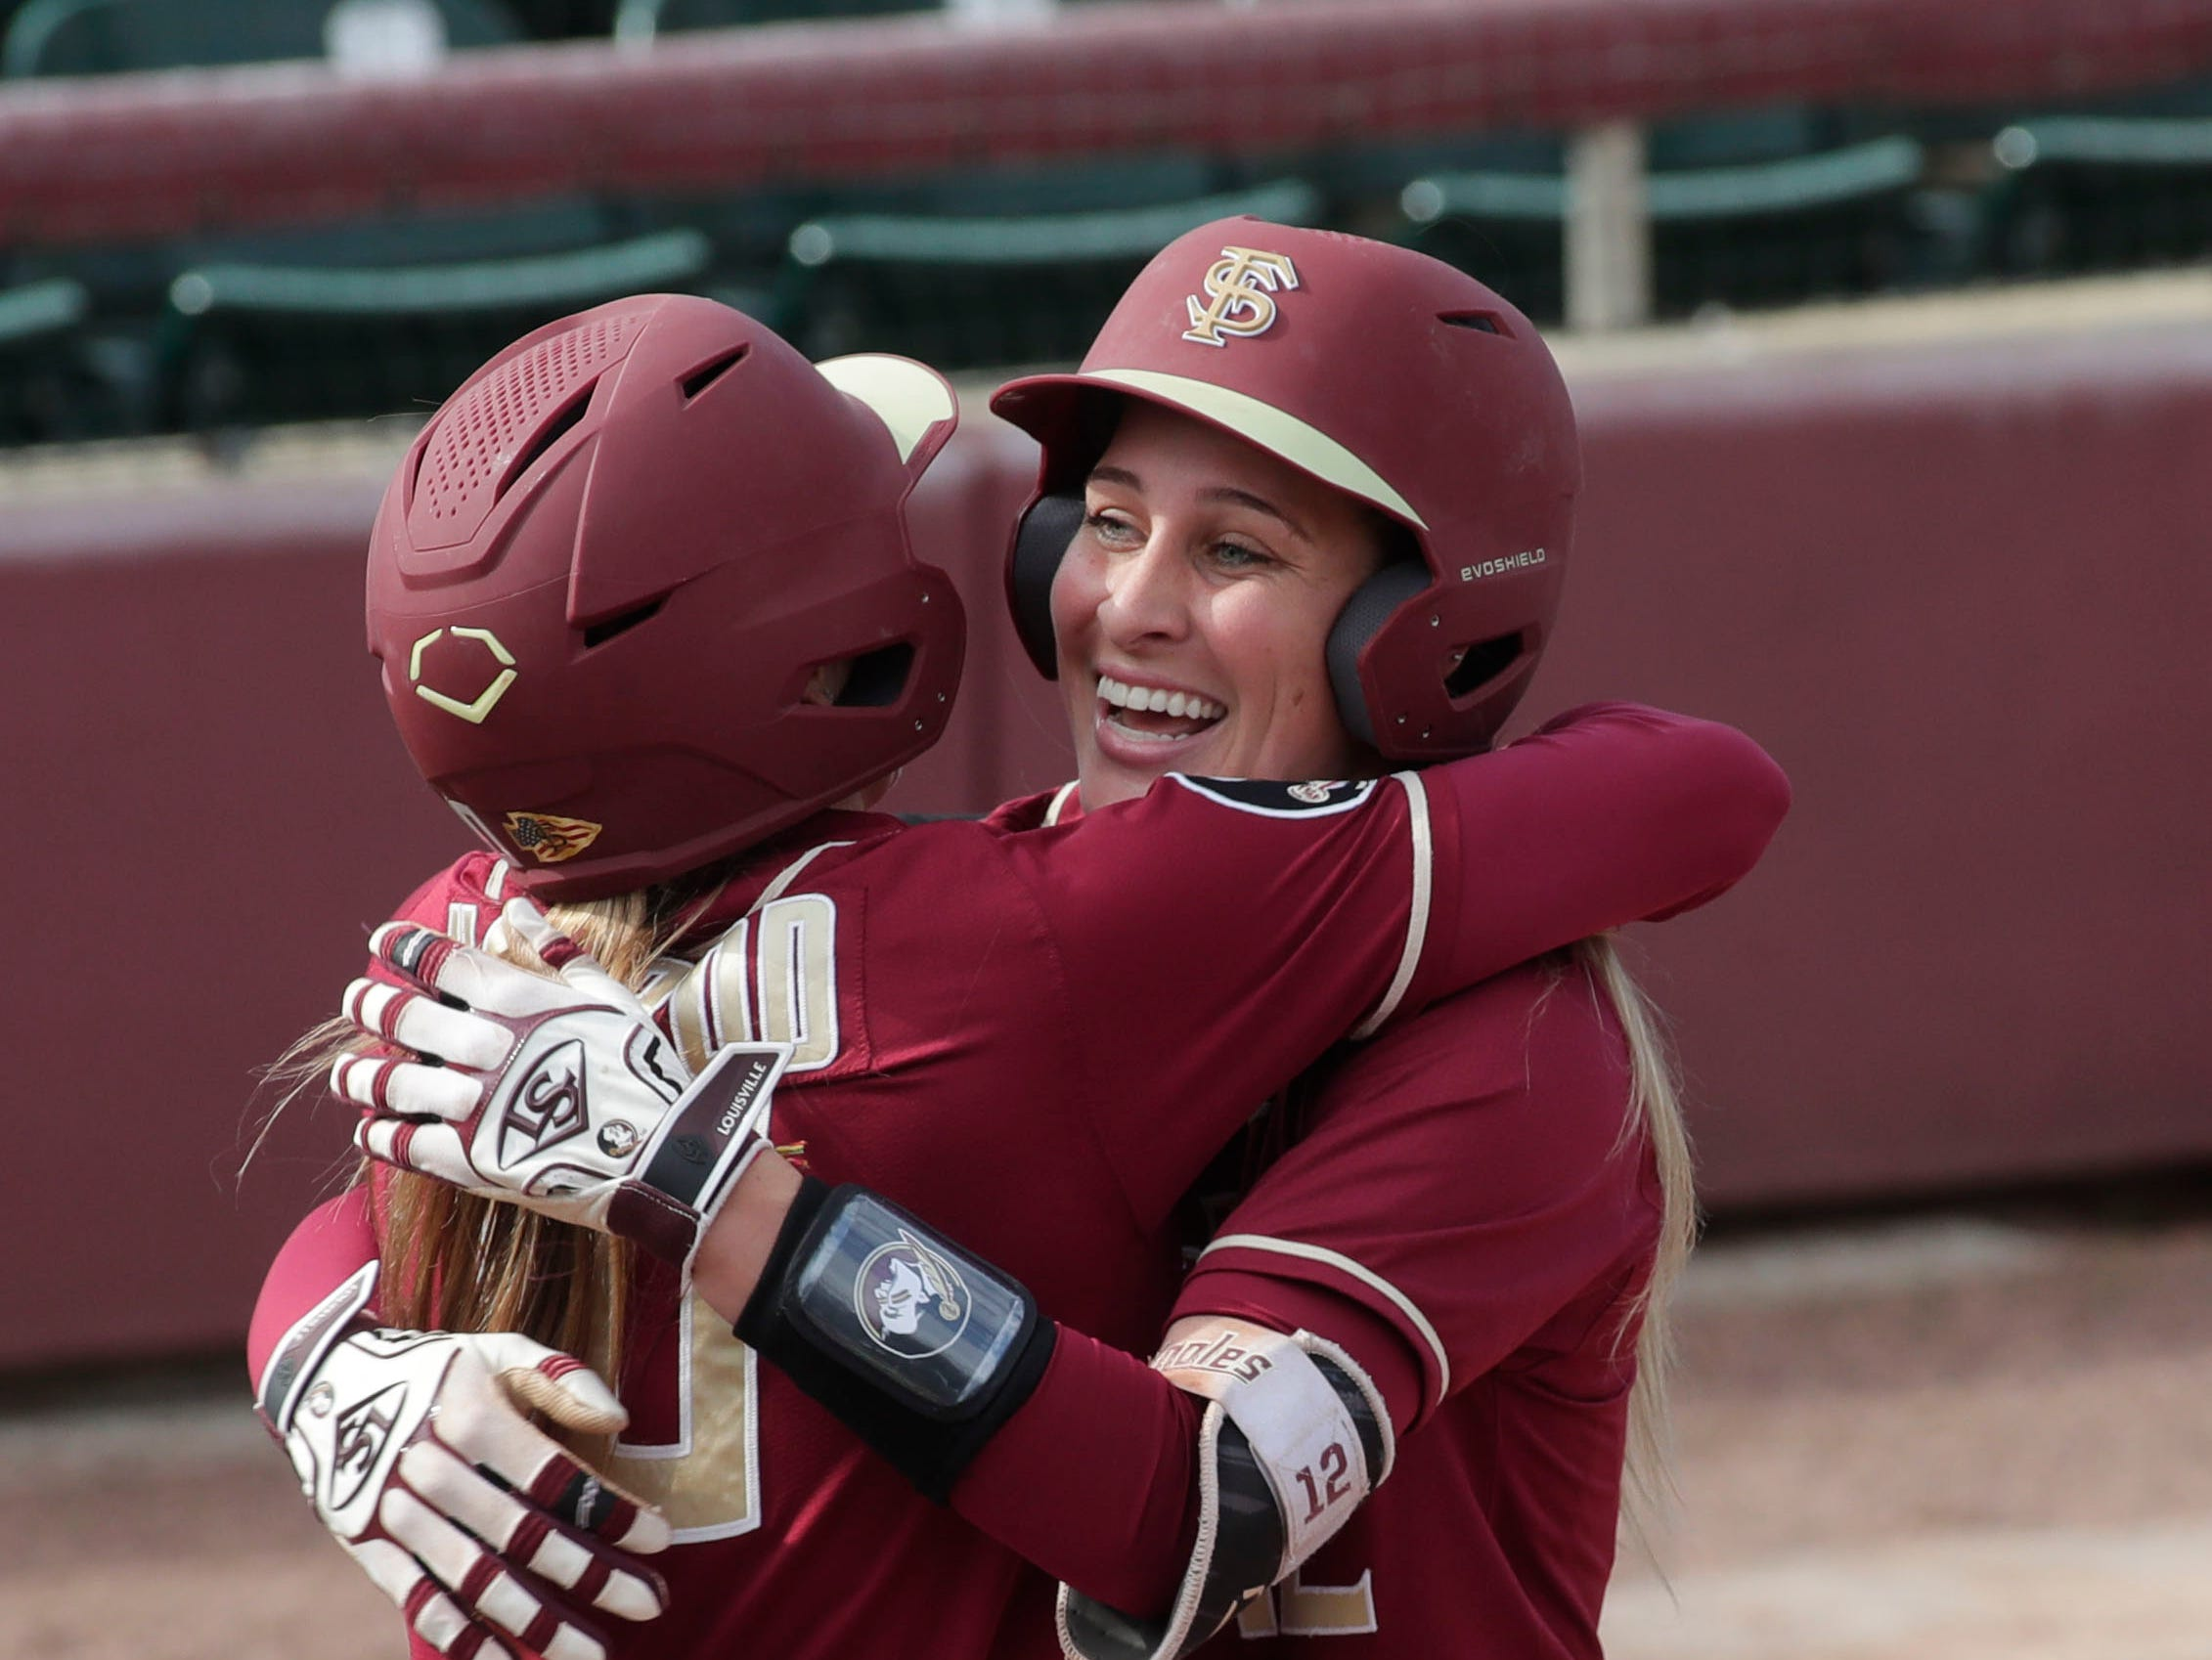 Florida State Seminoles infielder Carsyn Gordon (12) hugs her teammate after hitting a home run. The Florida State Seminoles host the Elon Phoenixes for the Unconquered Tournament, Friday Feb. 22, 2019.